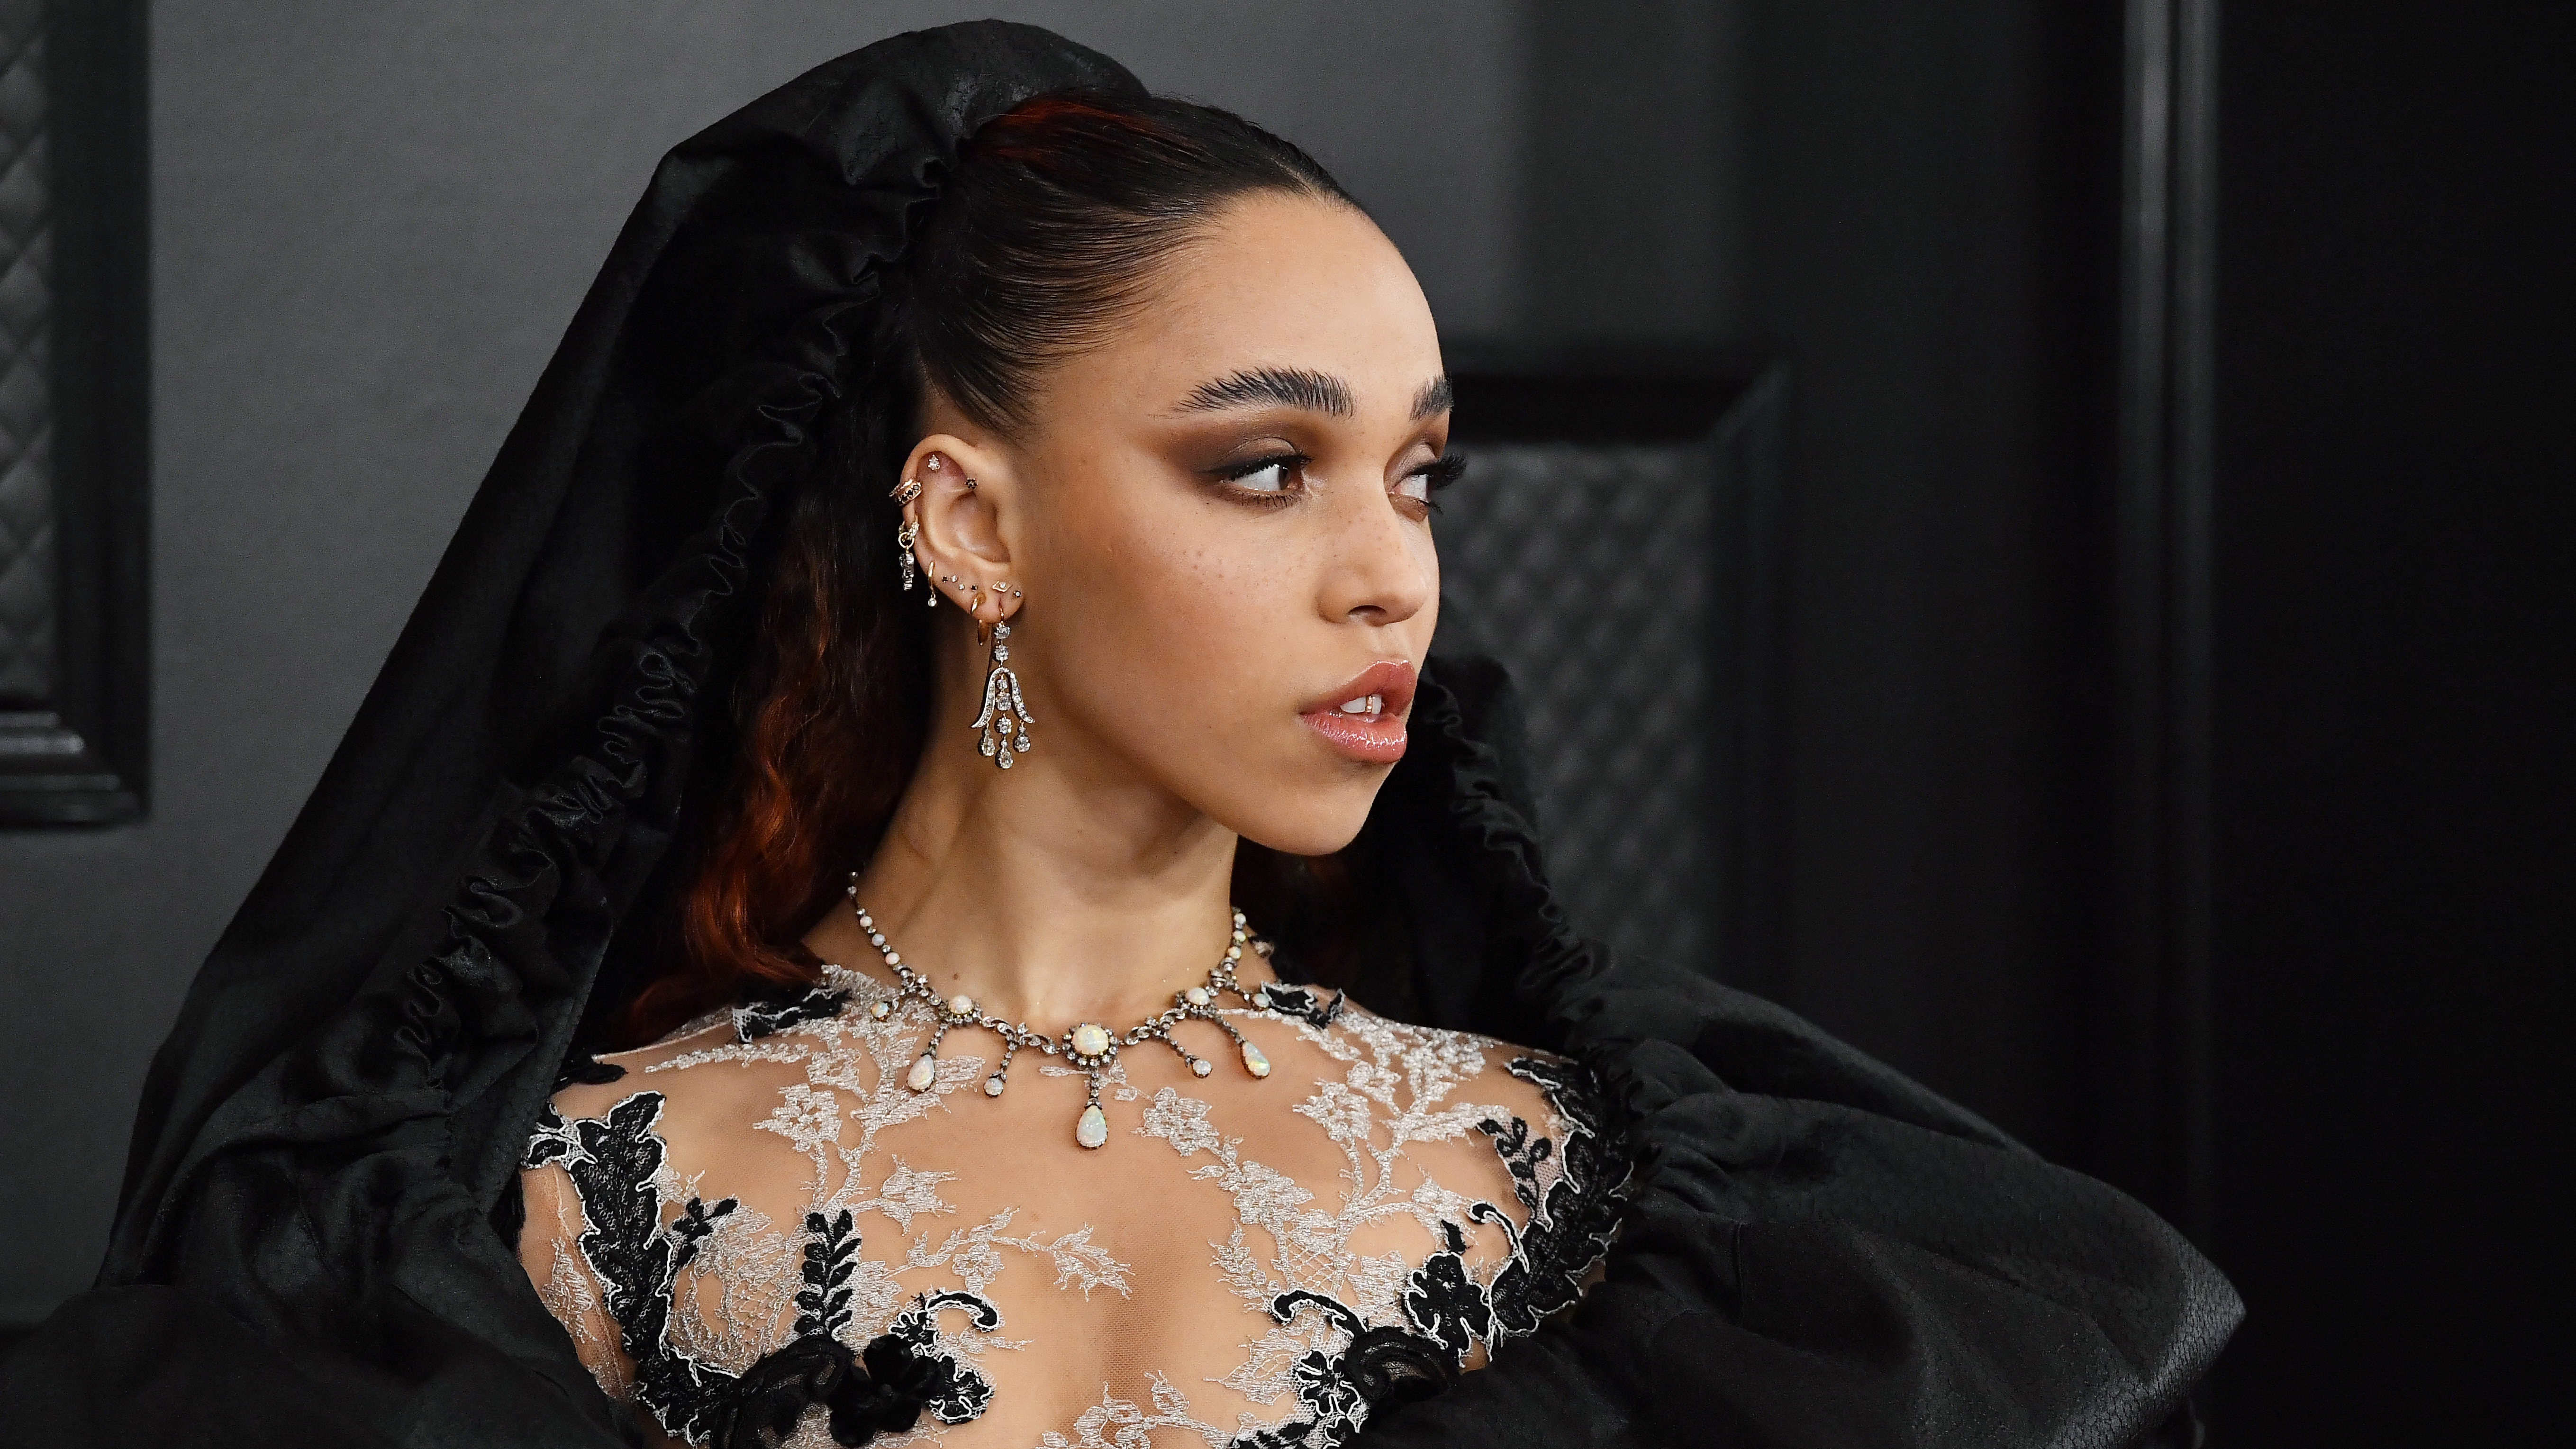 FKA Twigs Further Details The Harrowing Abuse She Suffered At The Hands Of Shia LaBeouf - Grazia USA